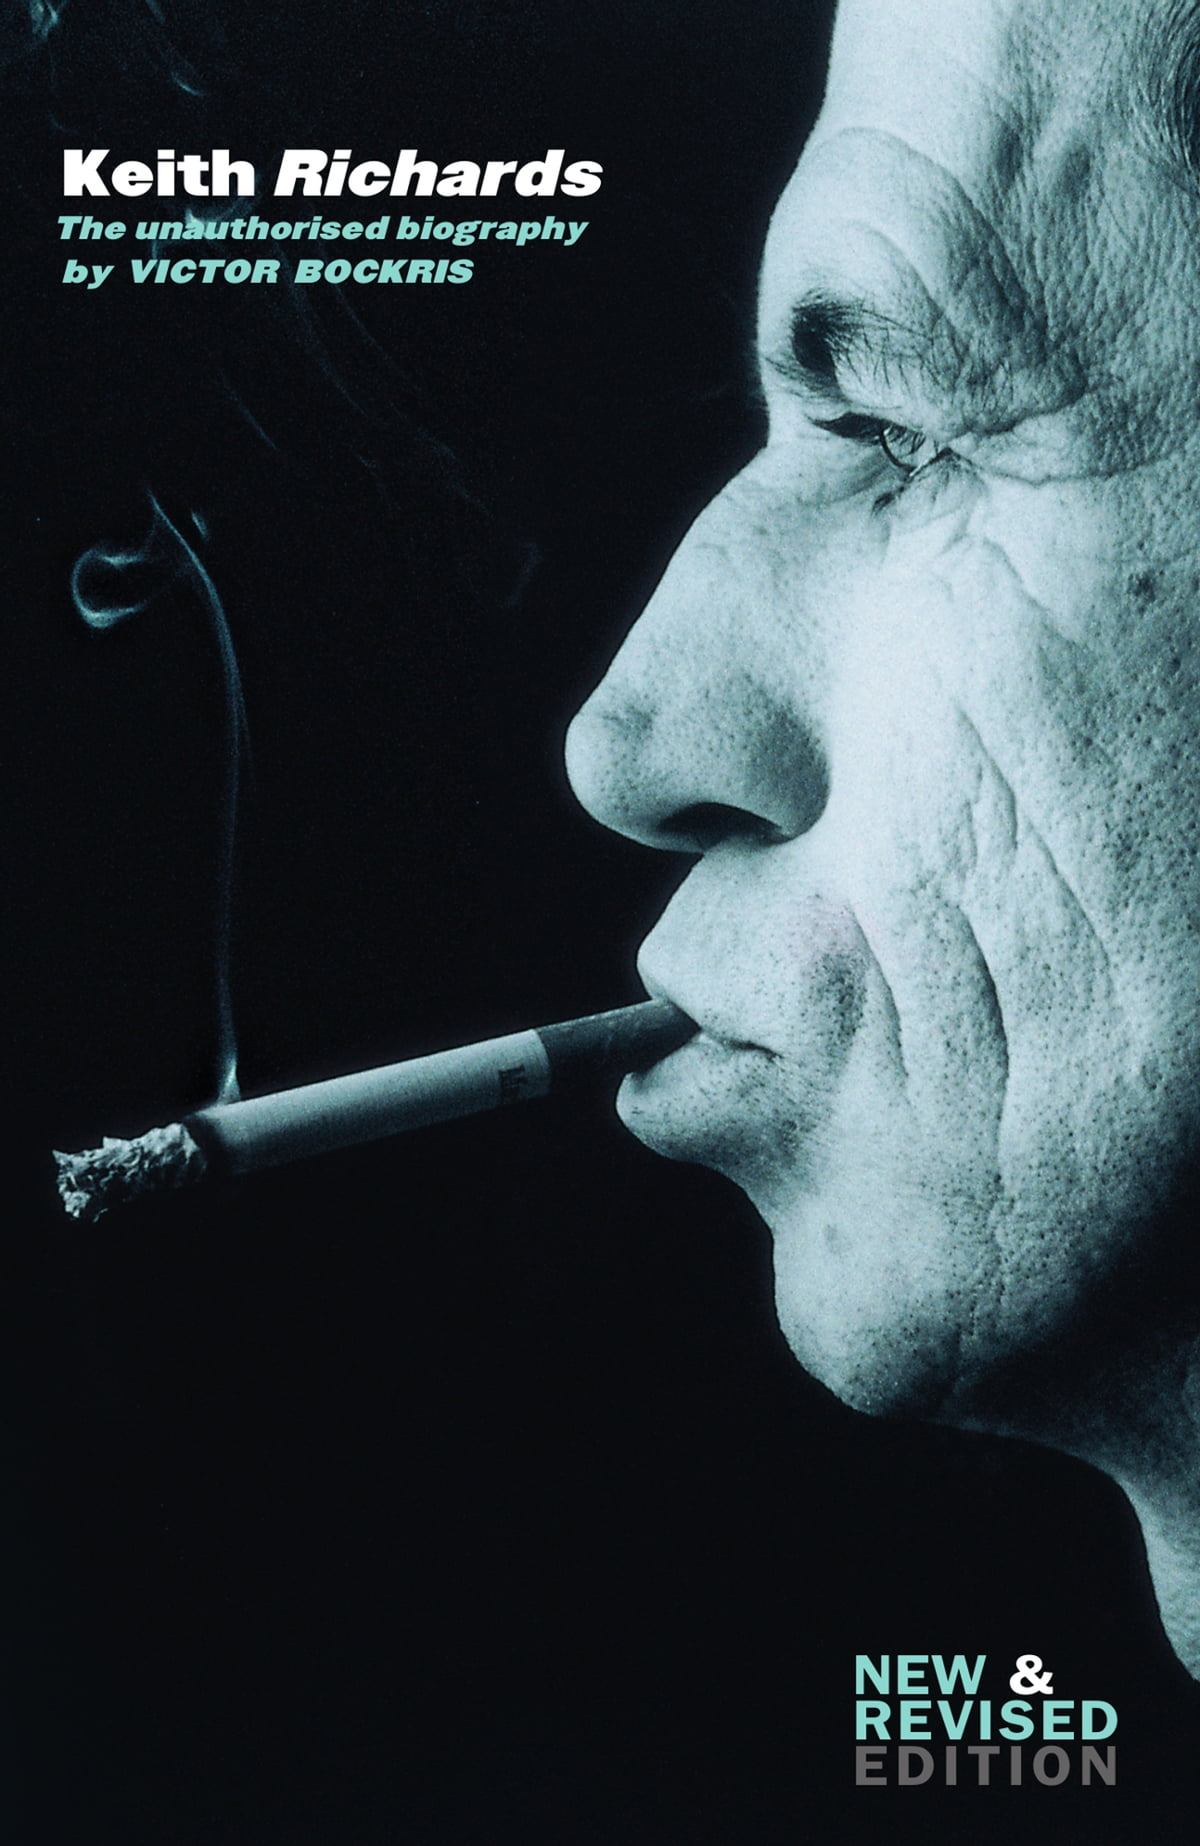 up and down with the rolling stones my rollercoaster ride with keith richards sanchez tony